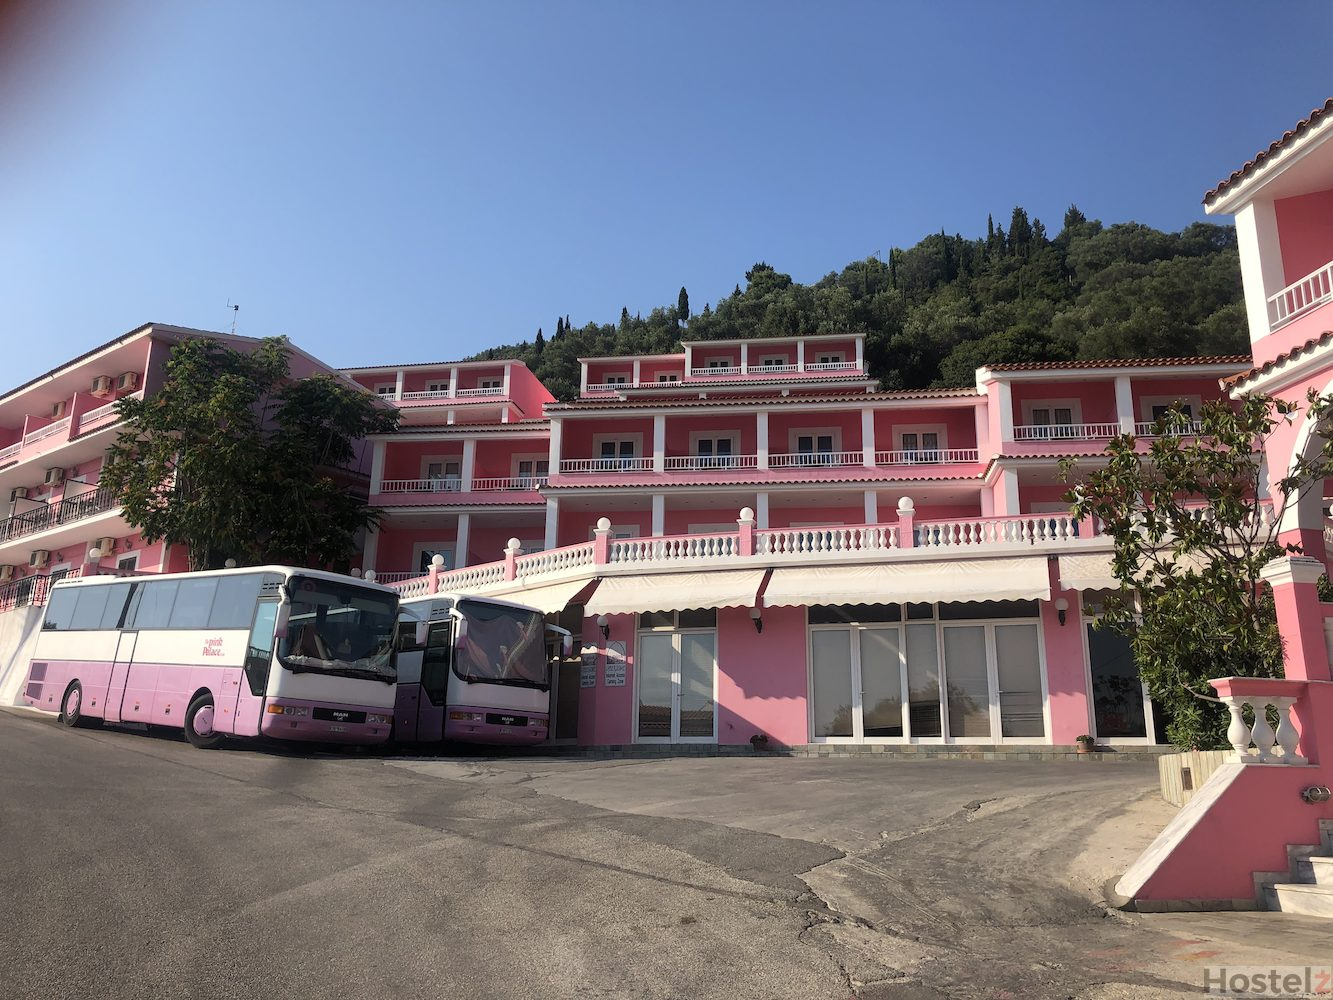 The Pink Palace, Corfu